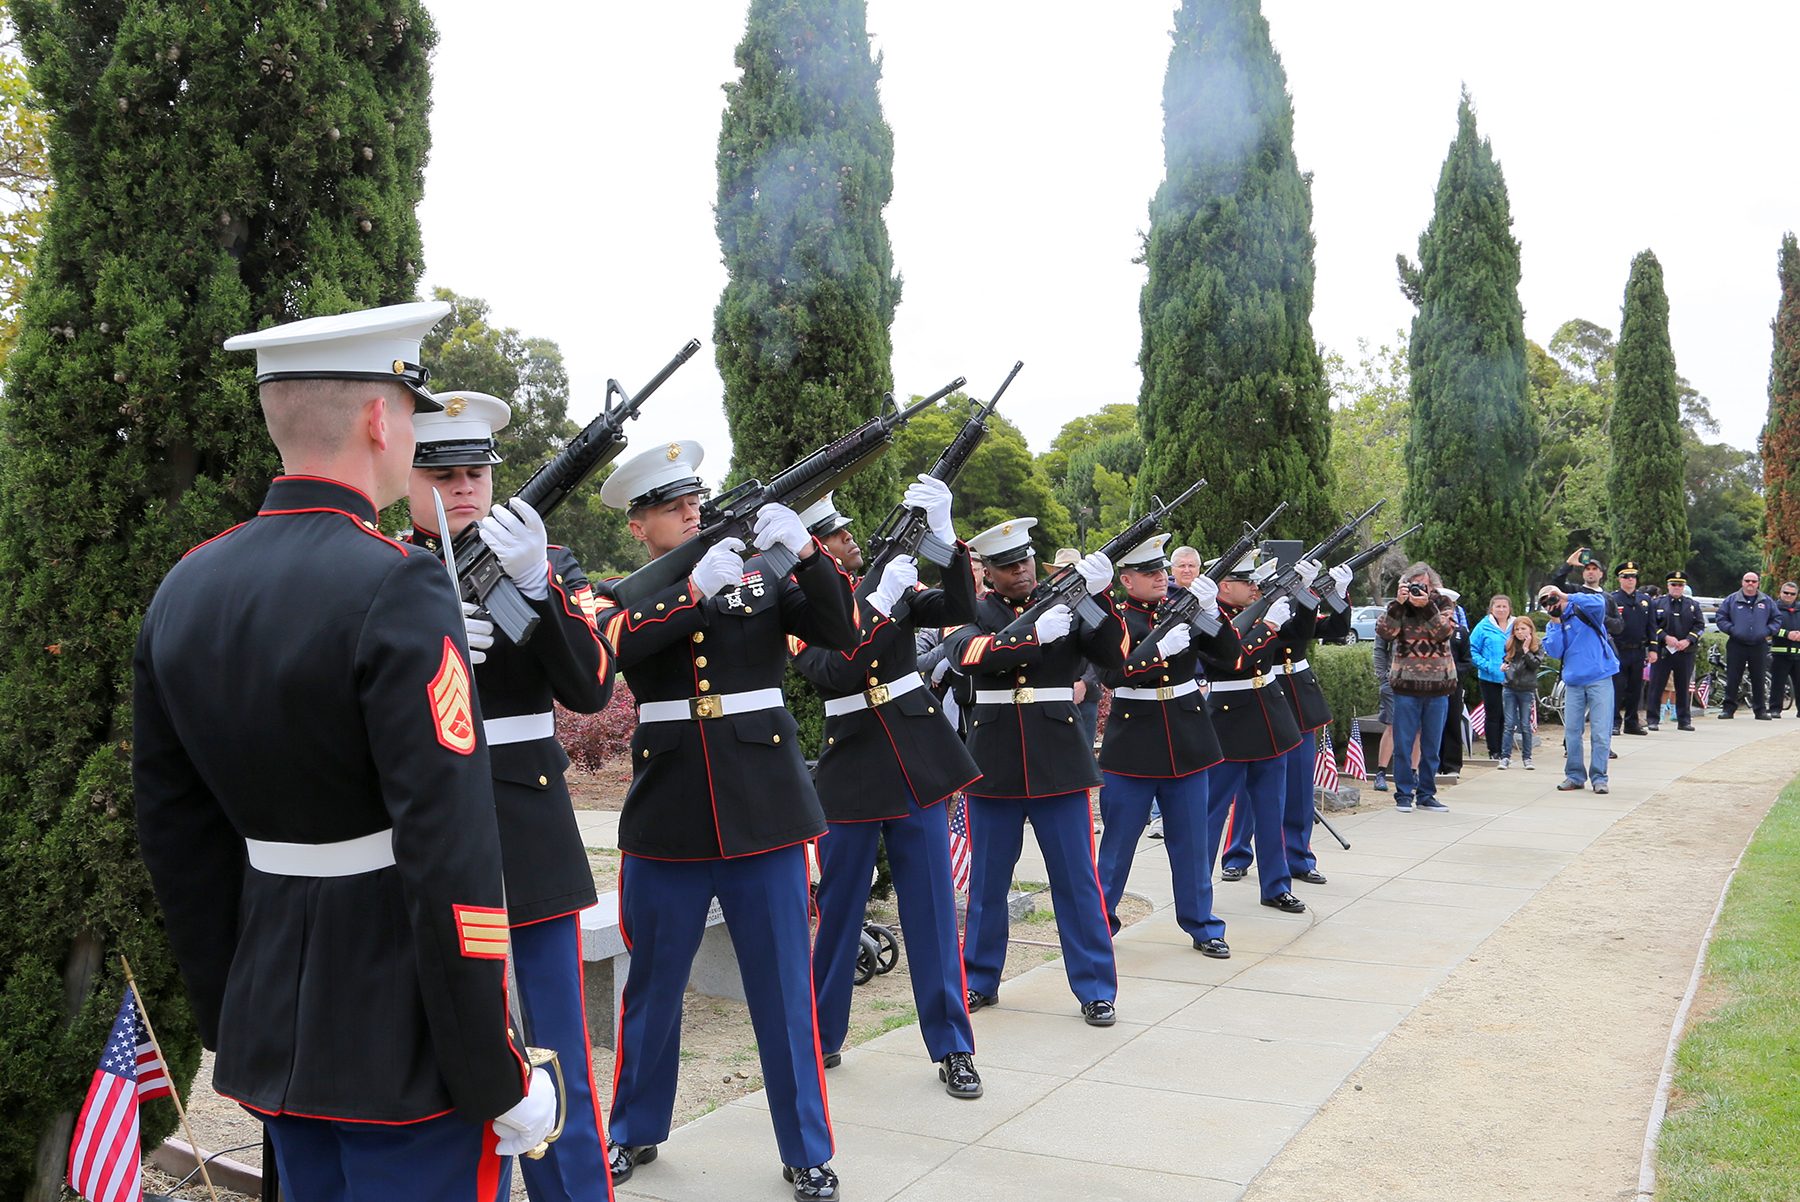 Courtesy photo  Marines fire off a salute during last year's Memorial Day Ceremony in Veterans Park on Bay Farm Island.